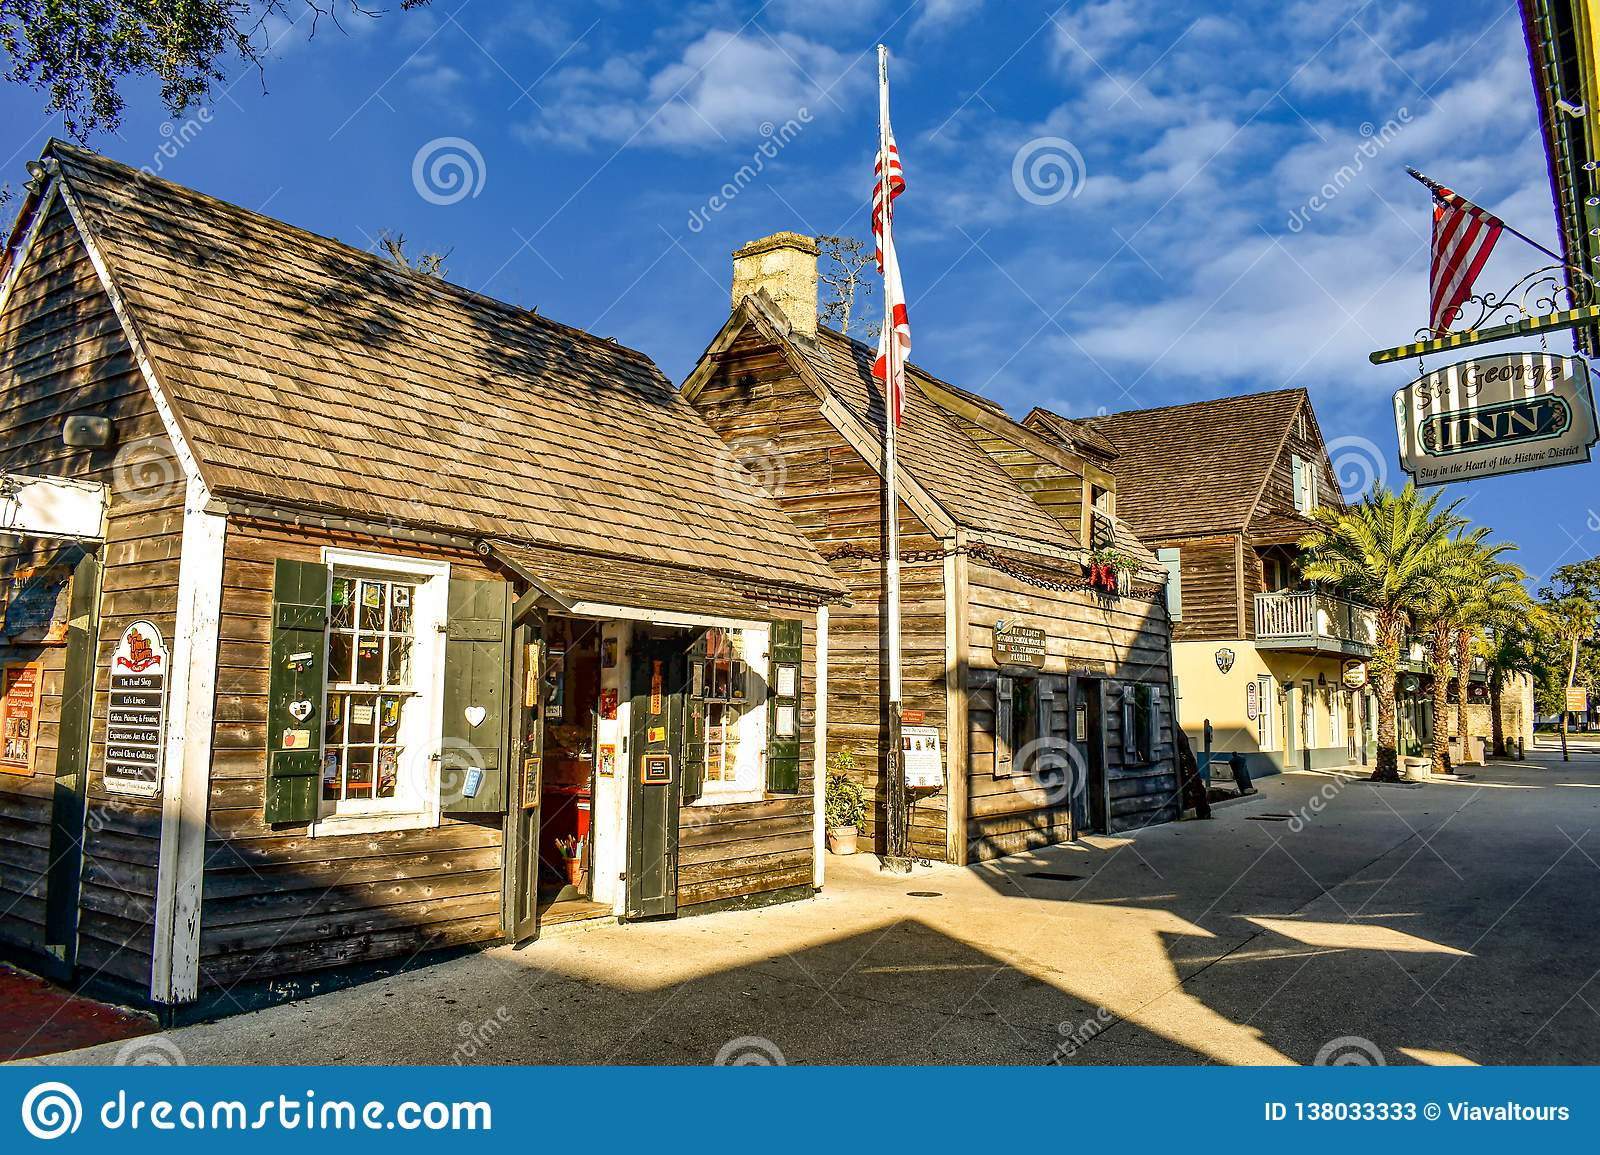 Seventeenth century mansions in St. George St. at Old Town in Florida`s Historic Coast 1